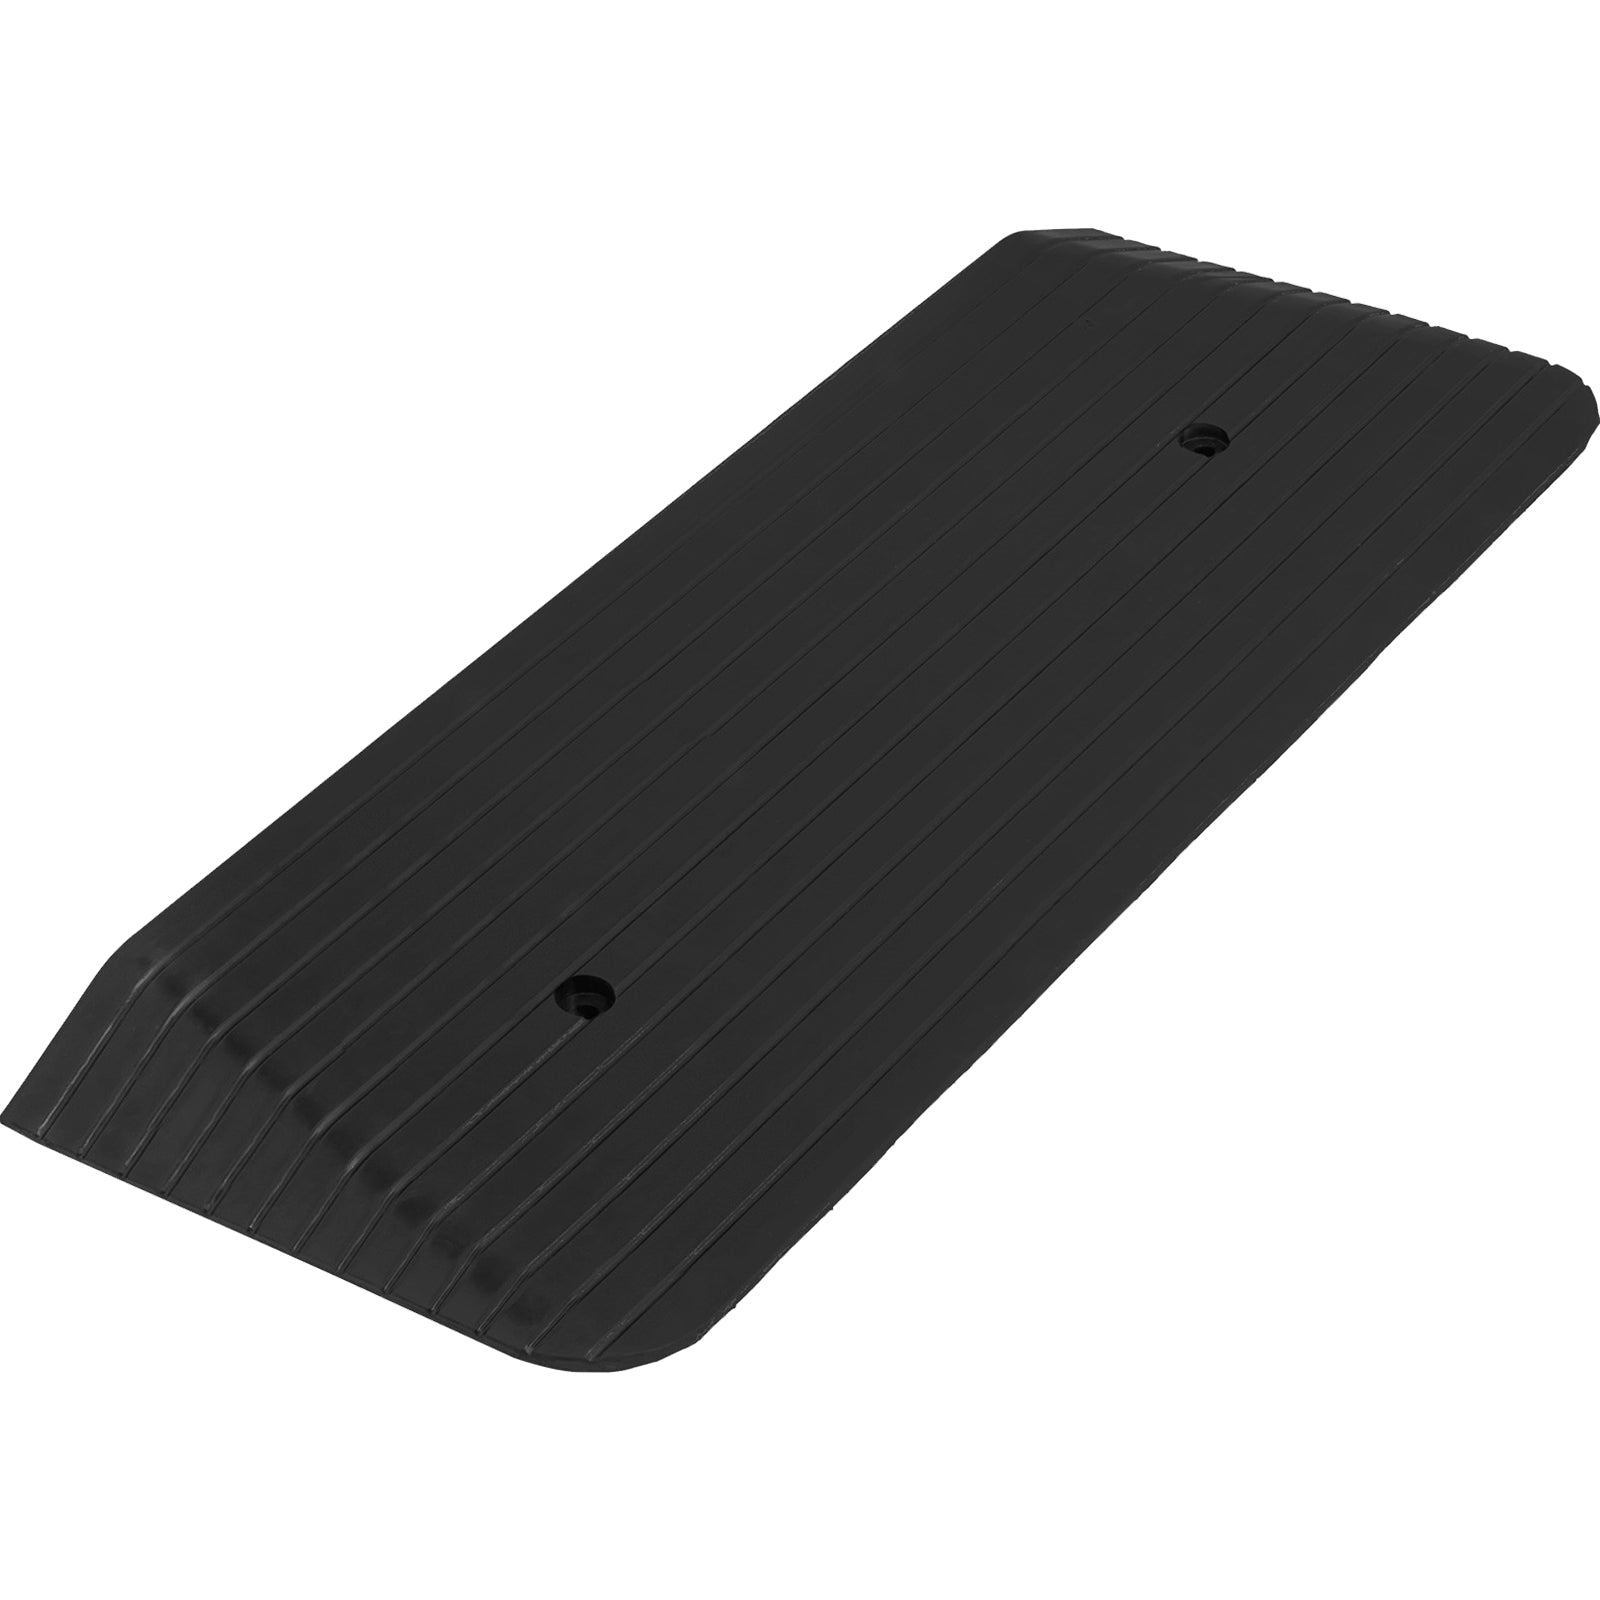 11000lb Threshold Ramp 43''x16''x2'' Rubber Multipurpose Threshold Ramp Updated